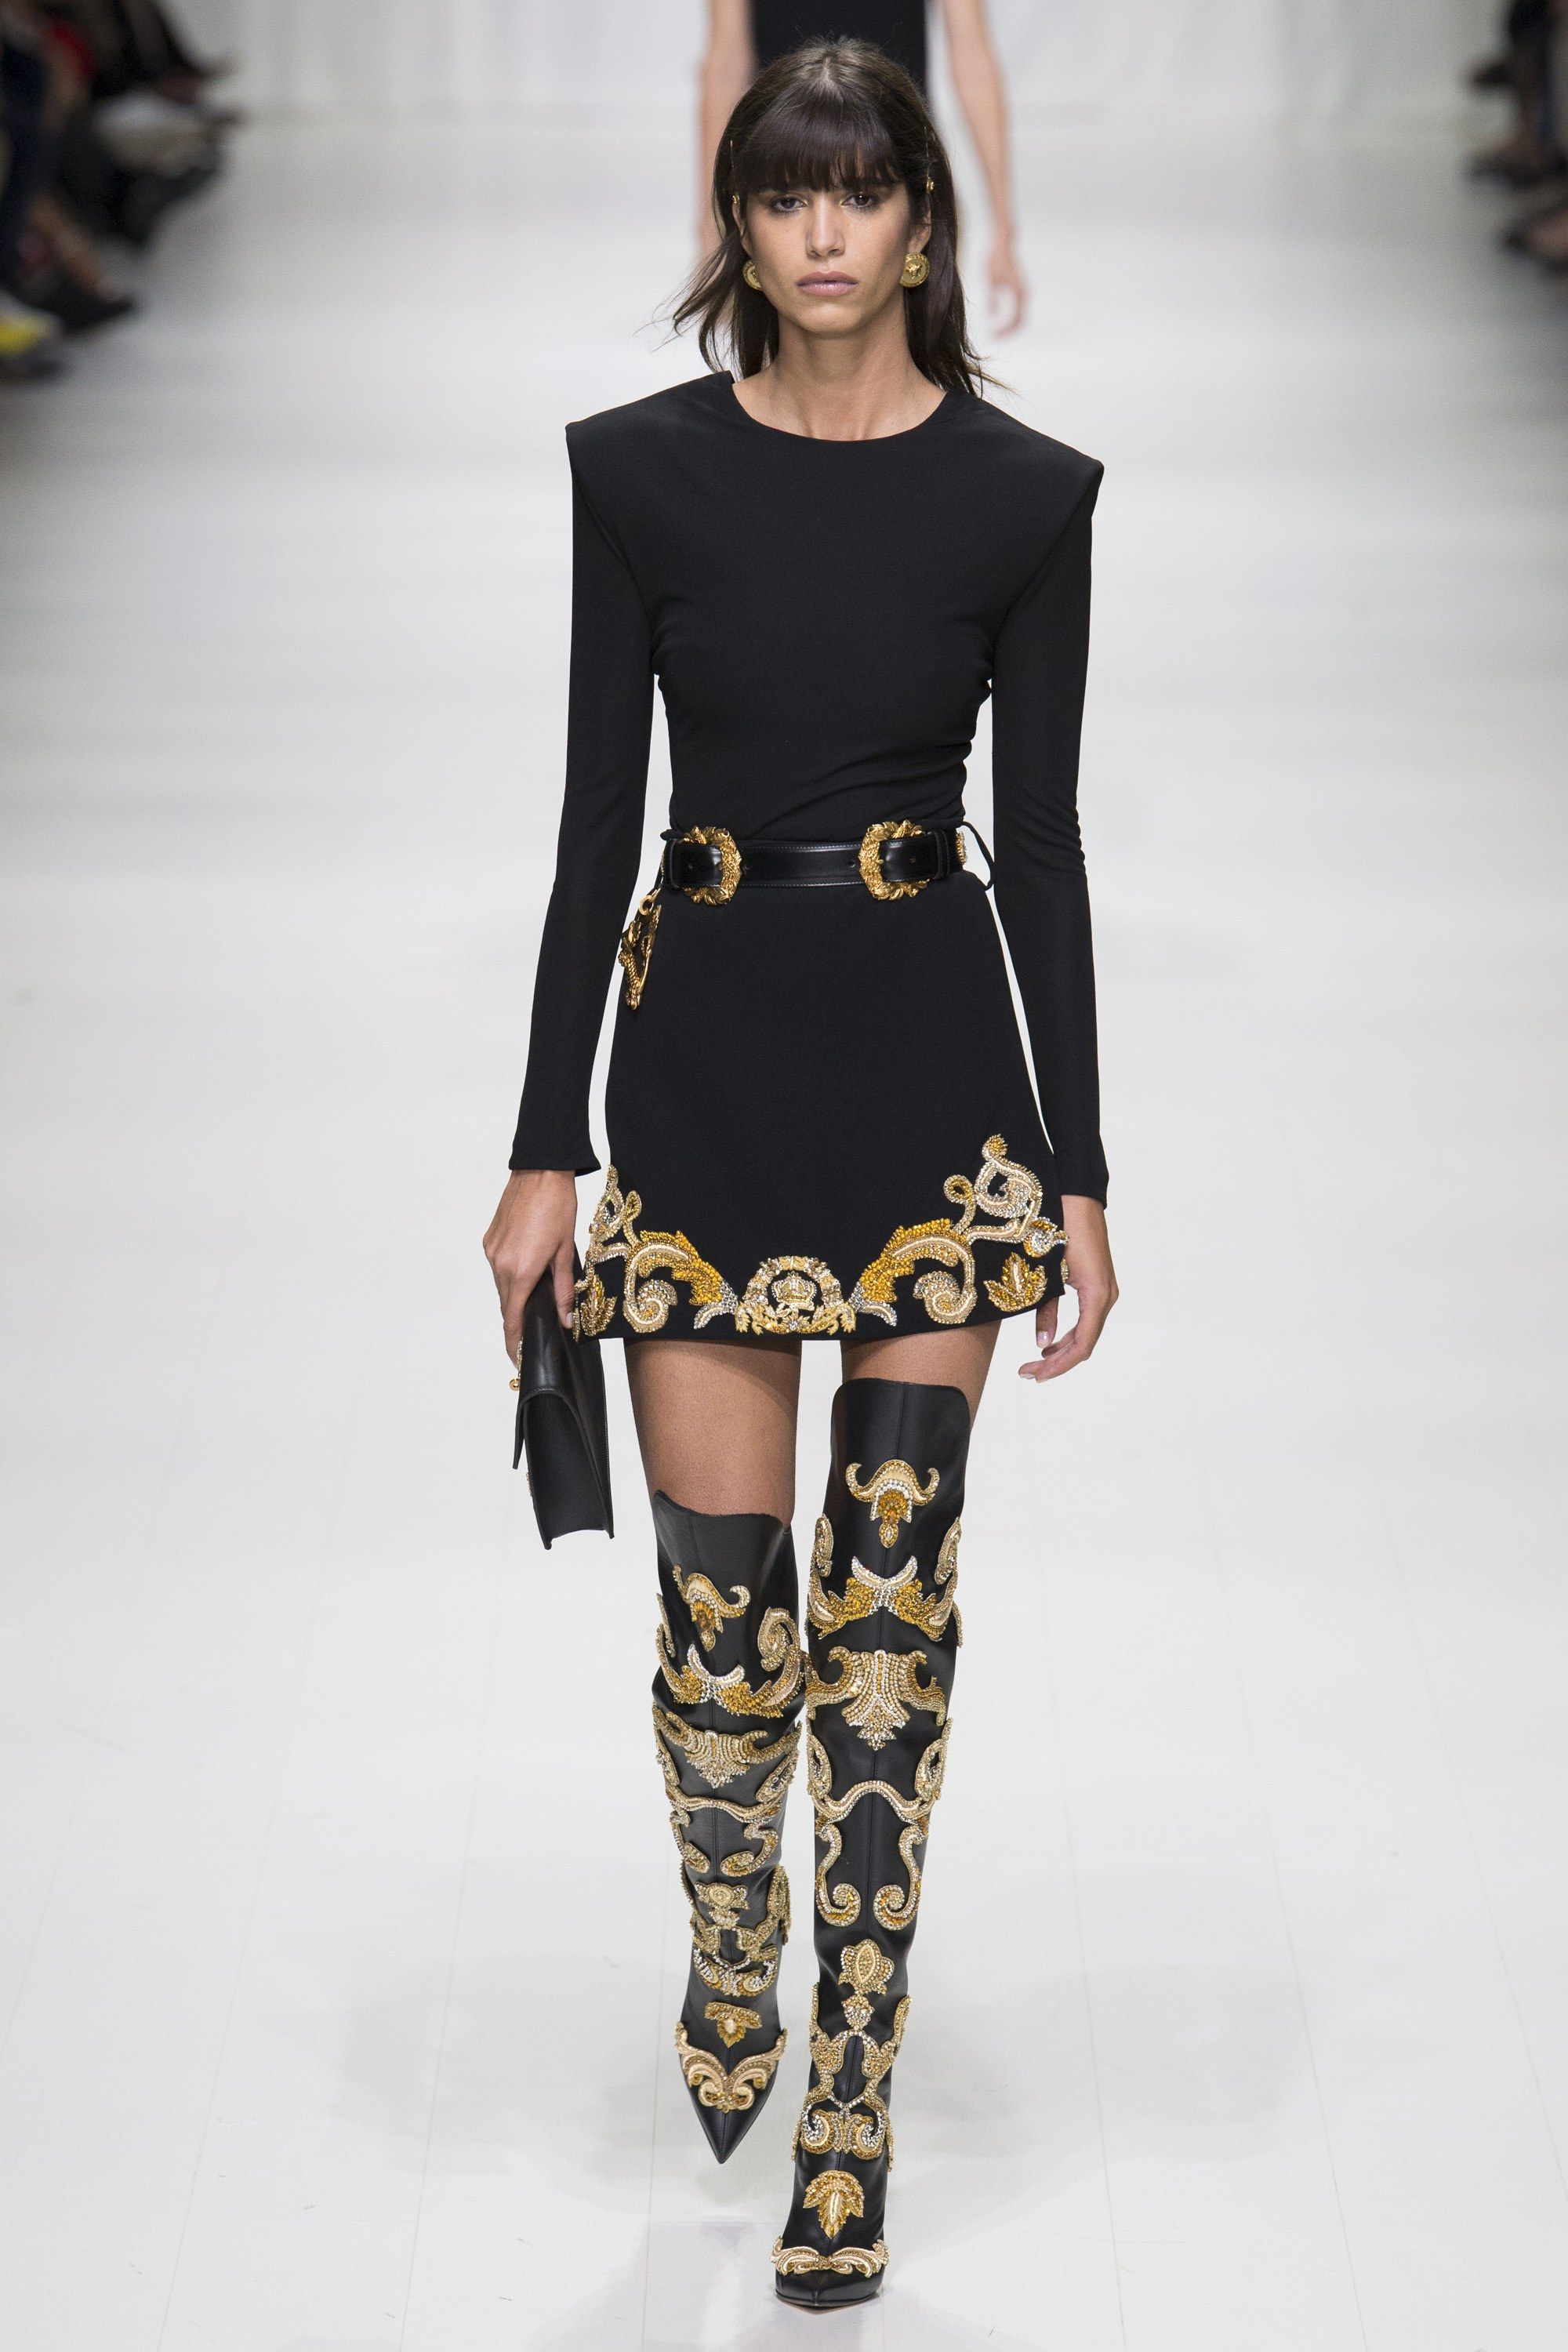 Versace Spring 2018 Ready-to-Wear Fashion Show | Versace ...